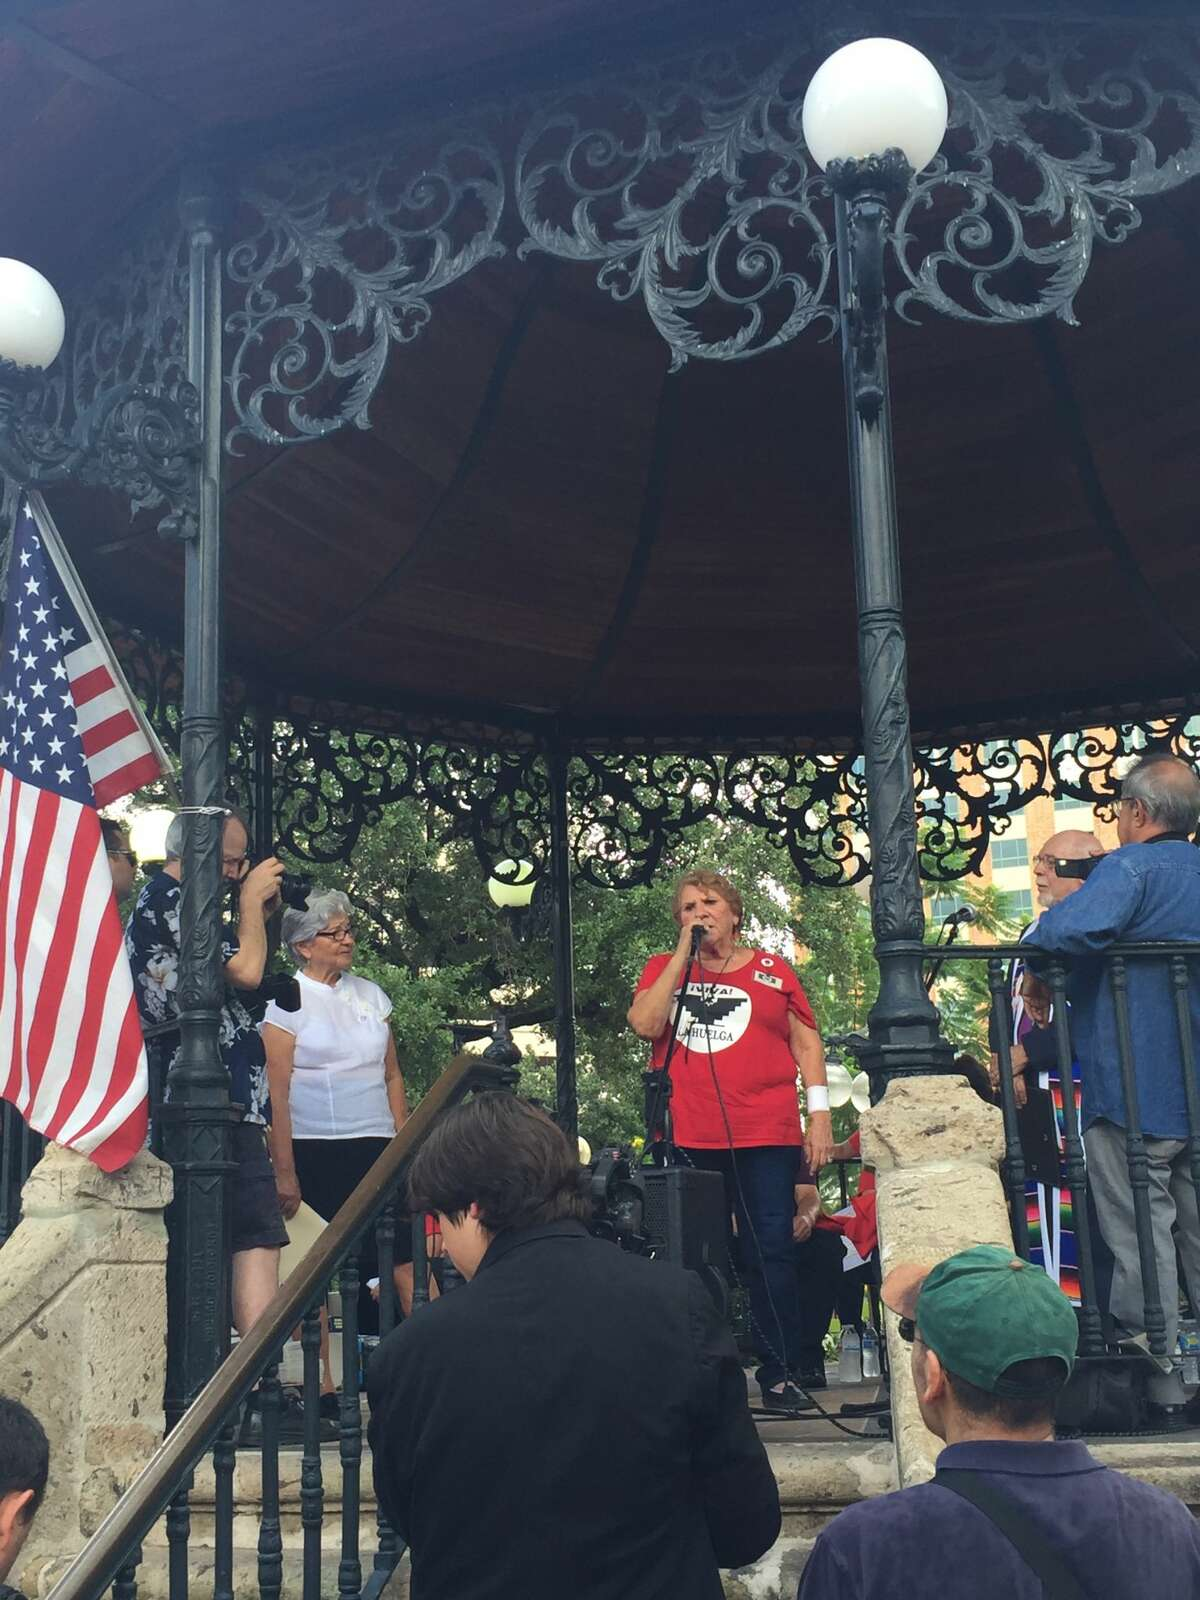 Daria Vera spoke at Milam Park about her experience as a protester or